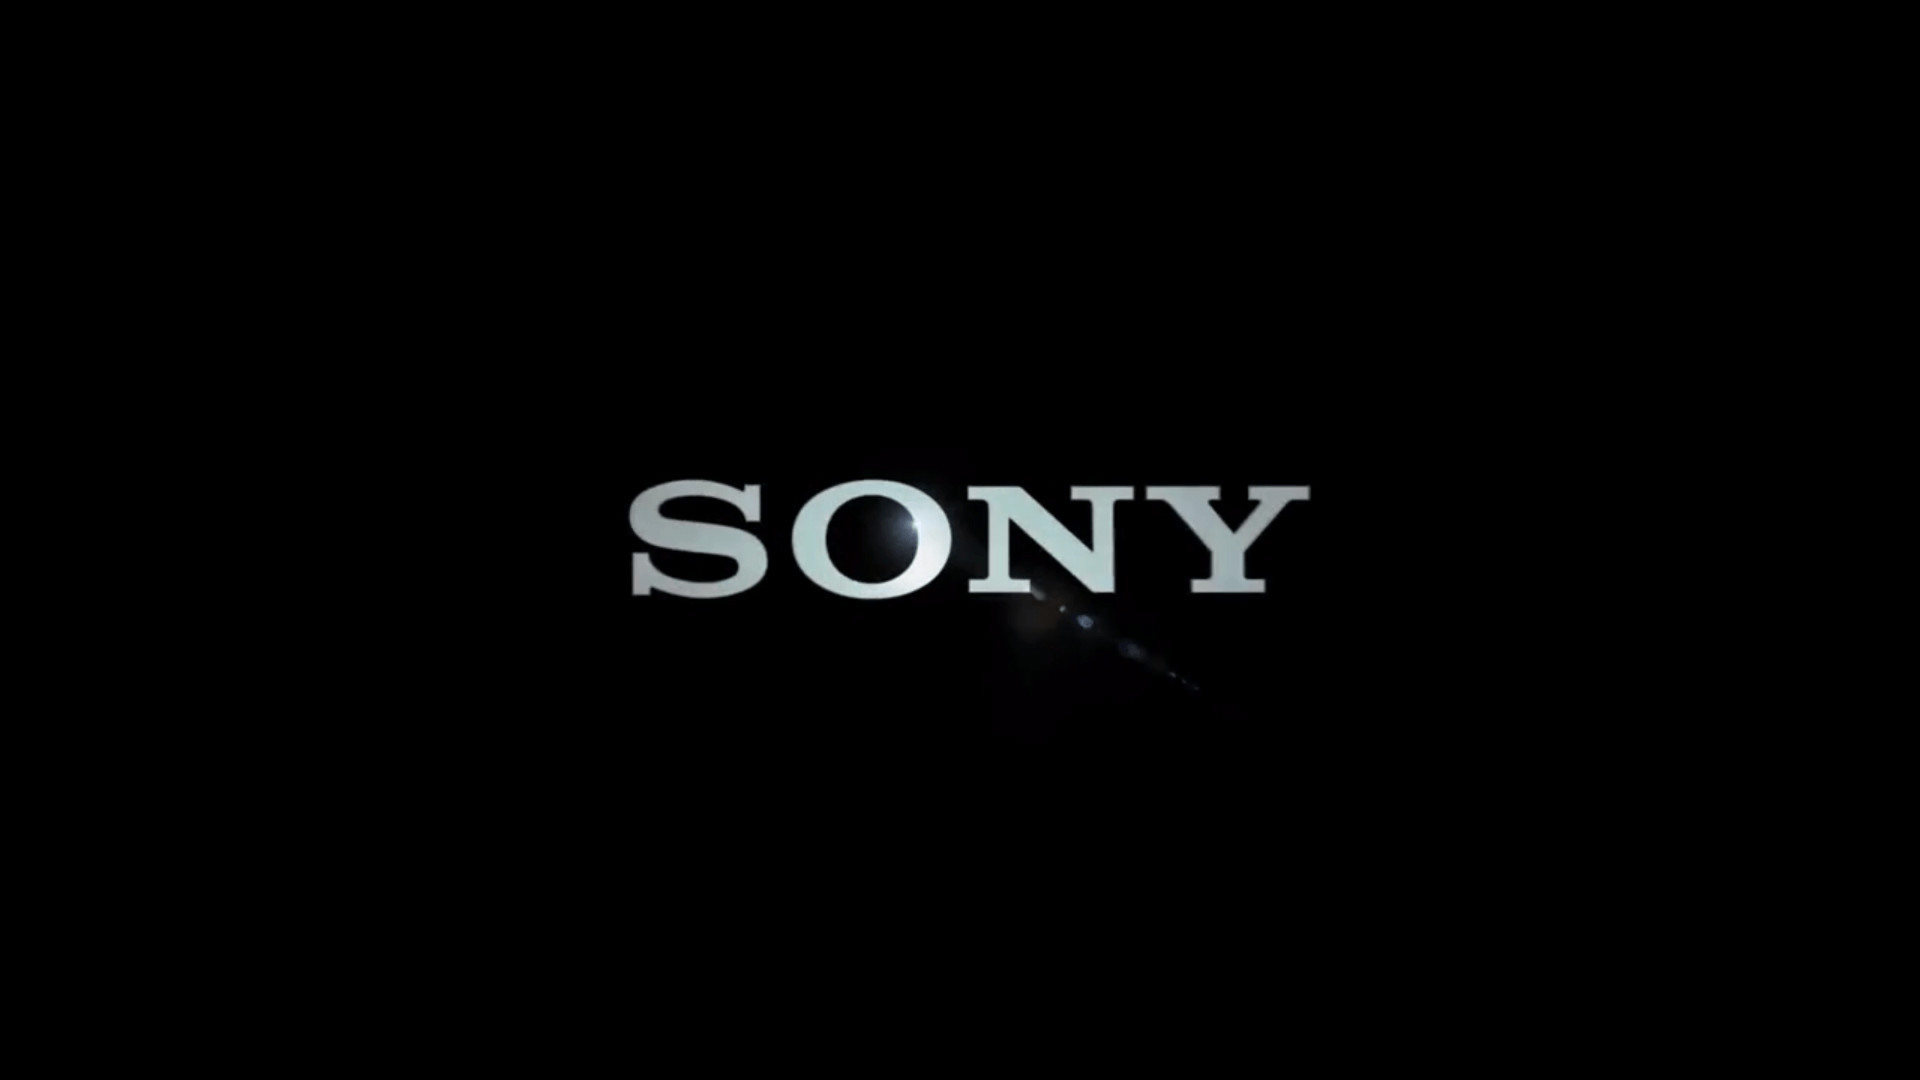 Bespoke Music production for Sony Xperia advert.